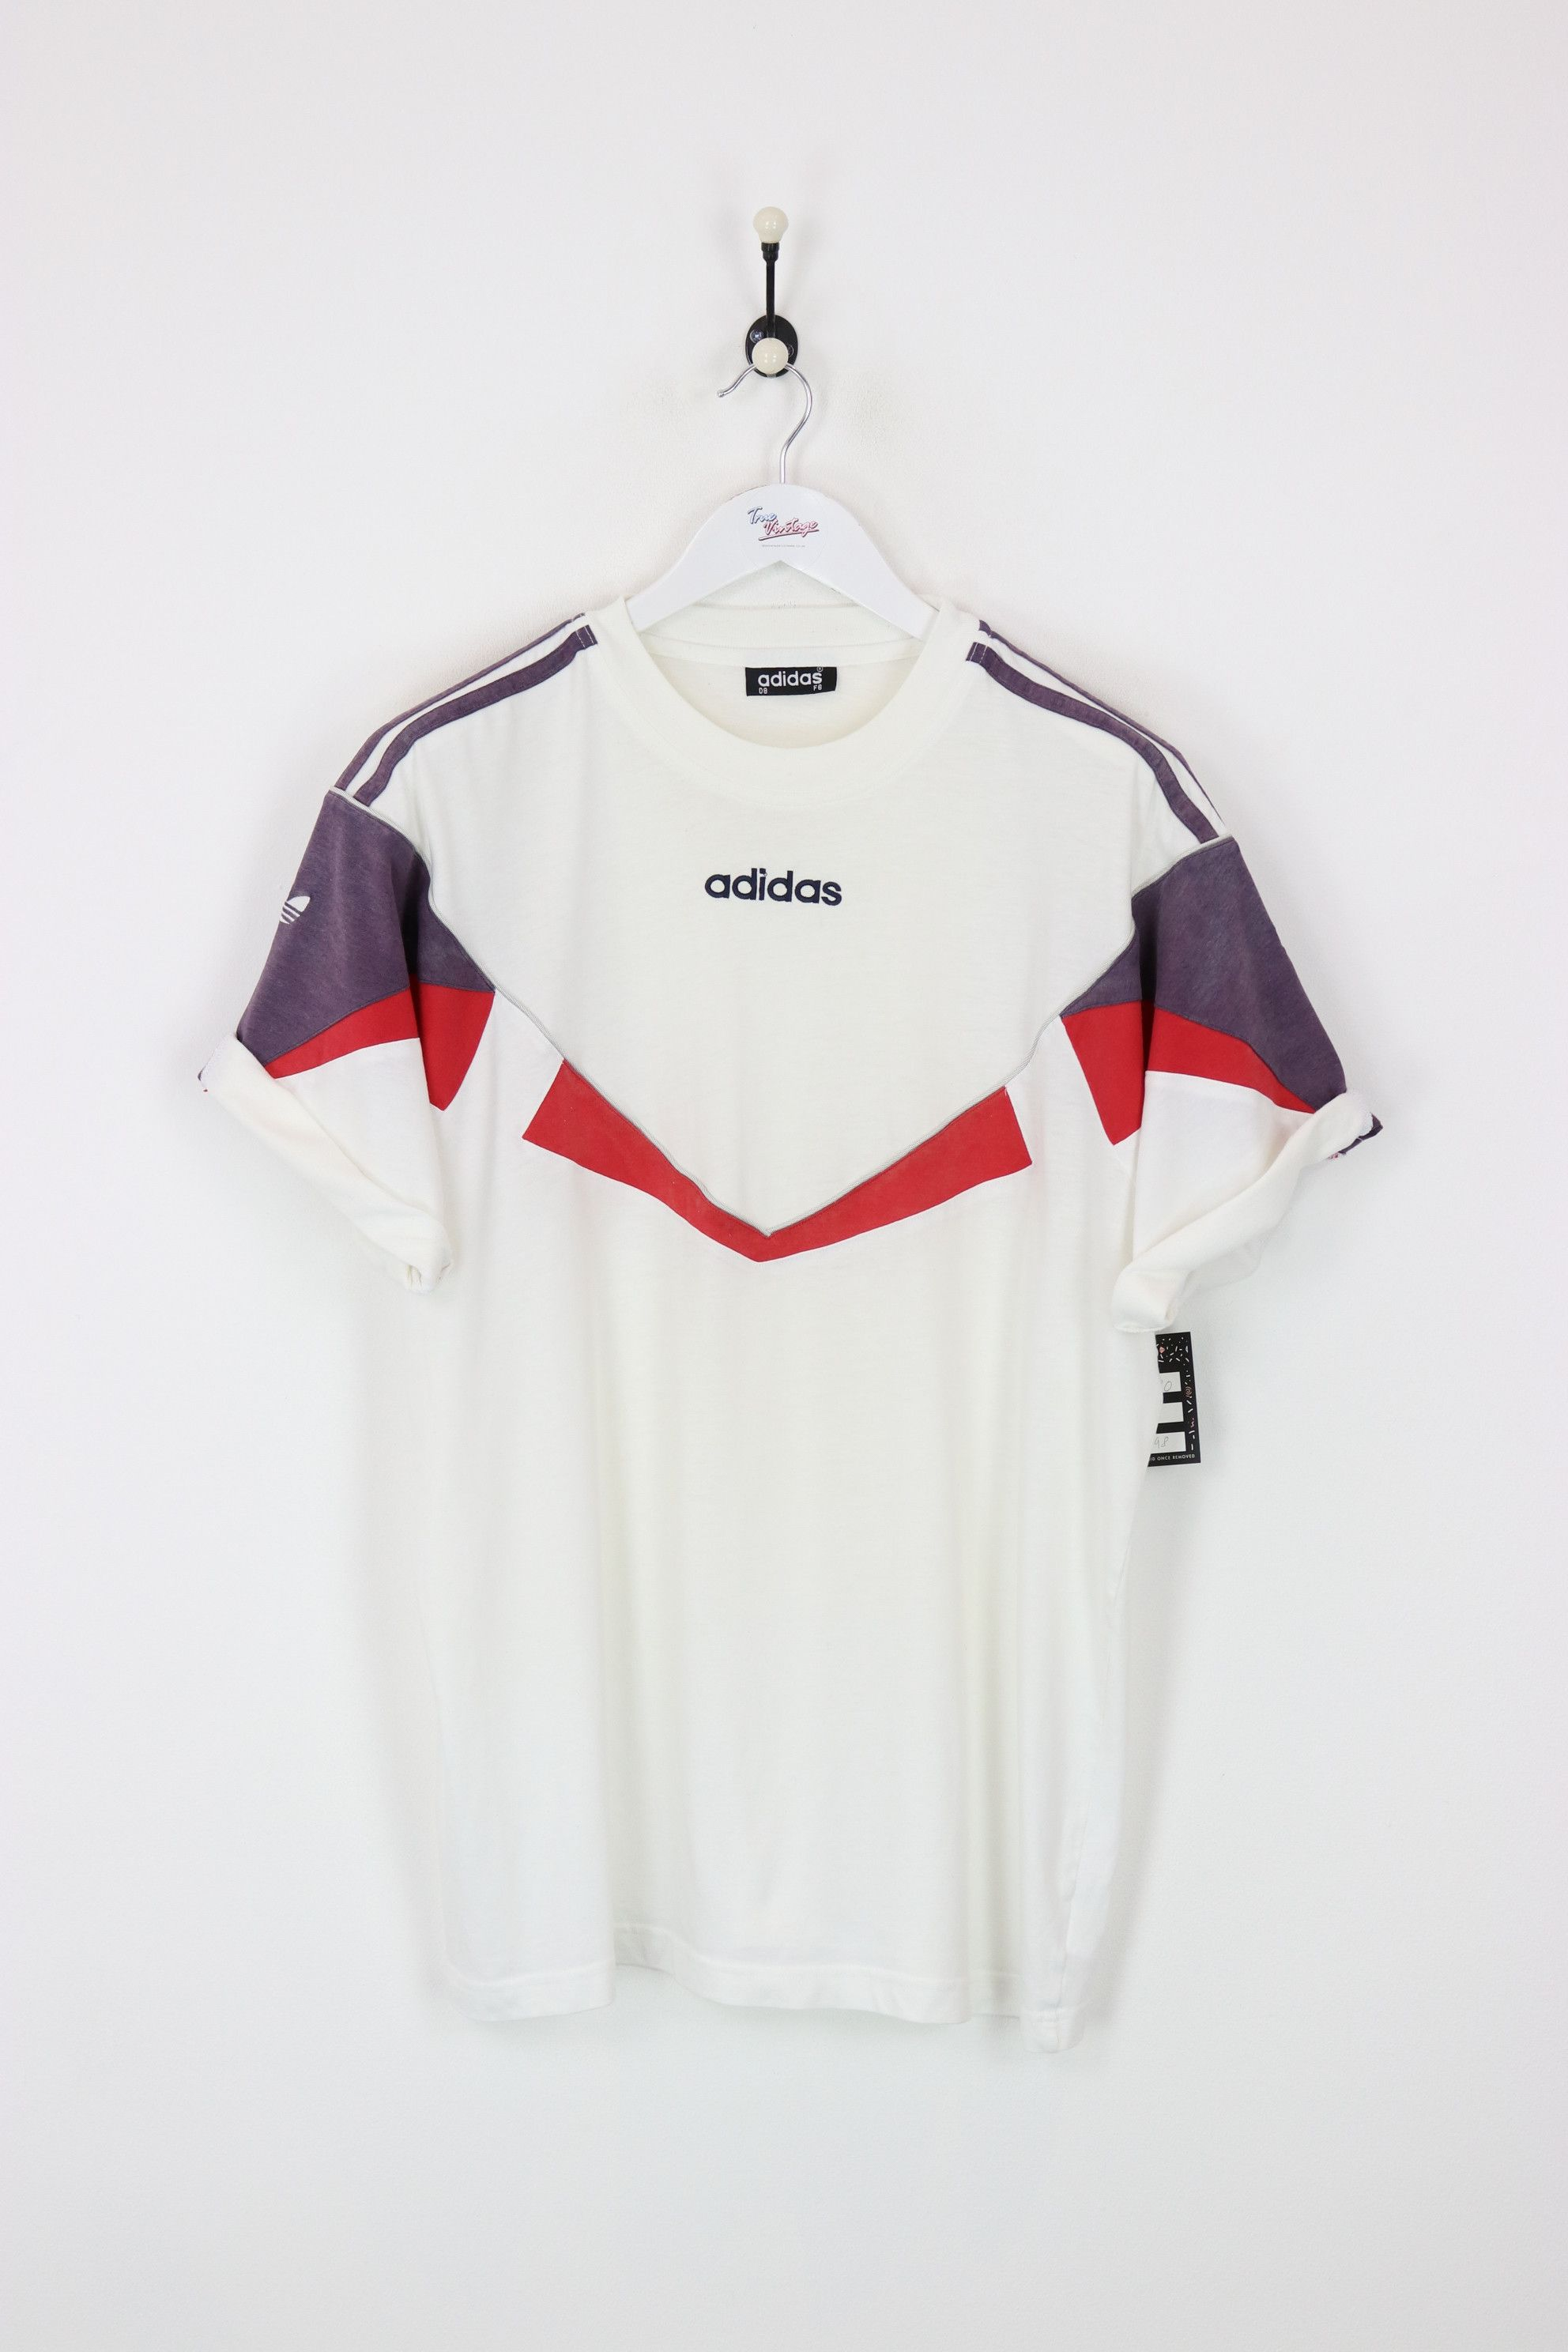 3e064367 Very good condition, vintage Adidas t-shirt. Measurements: Pit to pit - 25